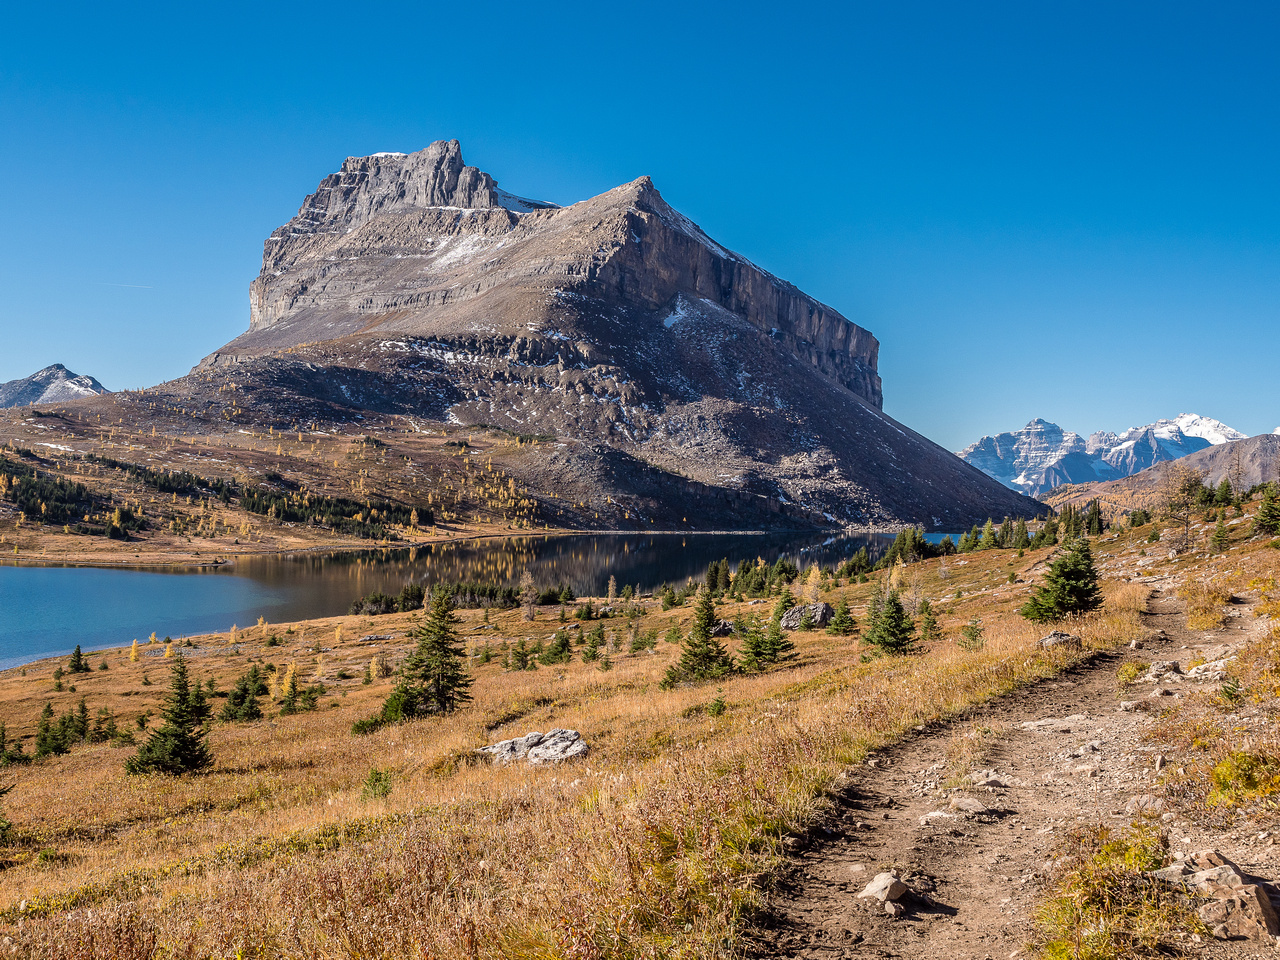 I love this impressive view of Redoubt Mountain from the trail around Ptarmigan Lake.